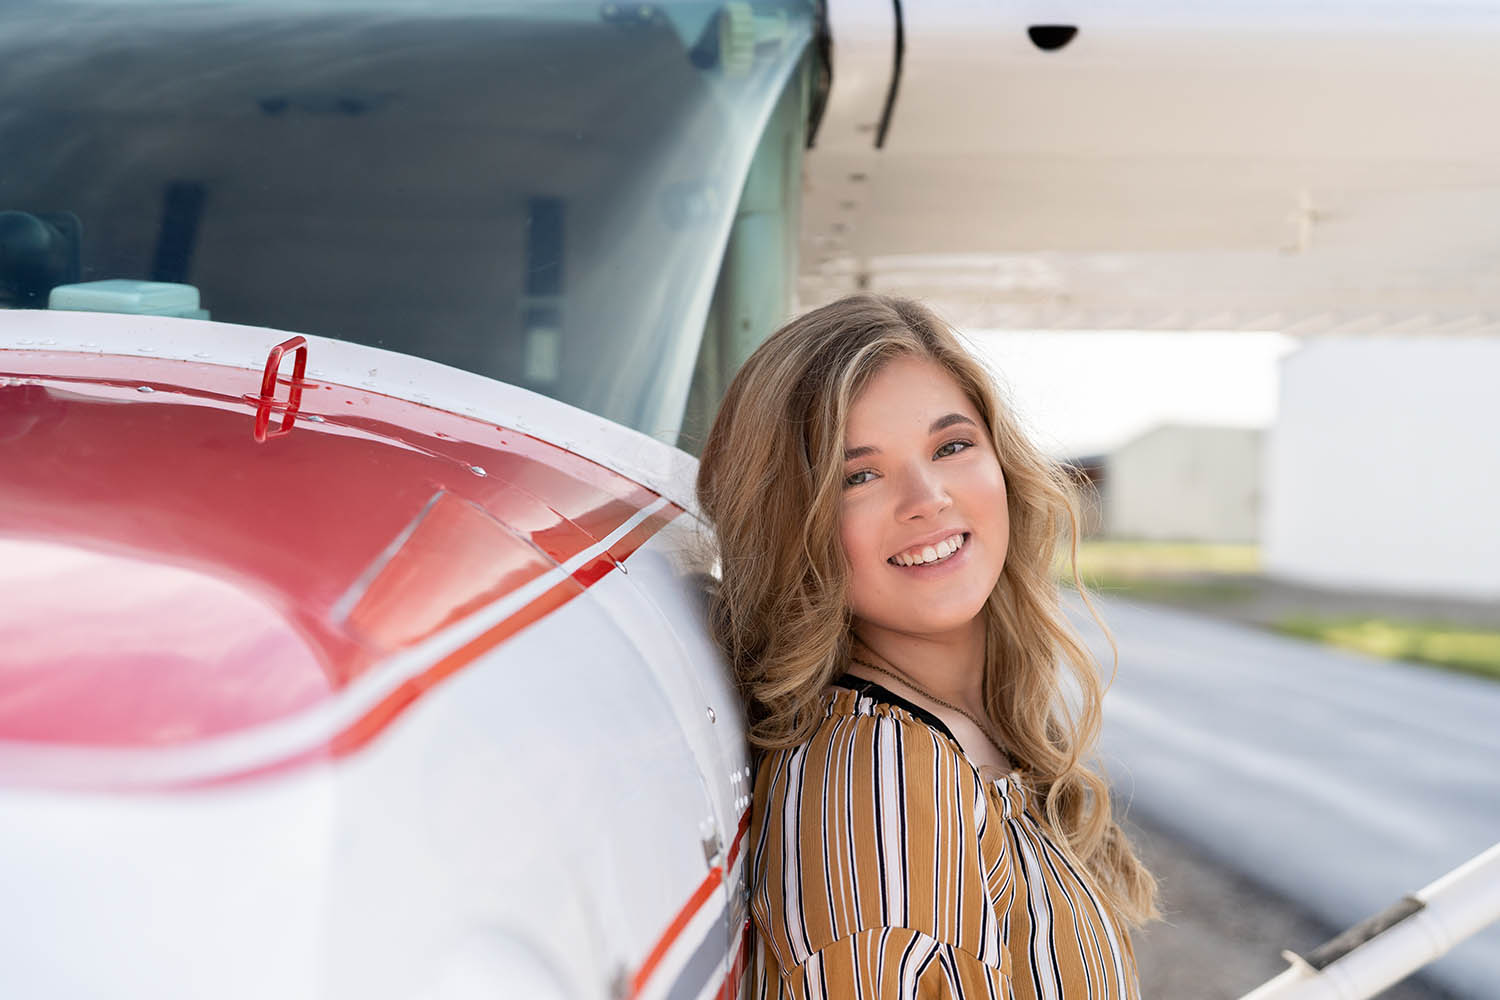 A high school senior girl leans agains the side of a small airplane